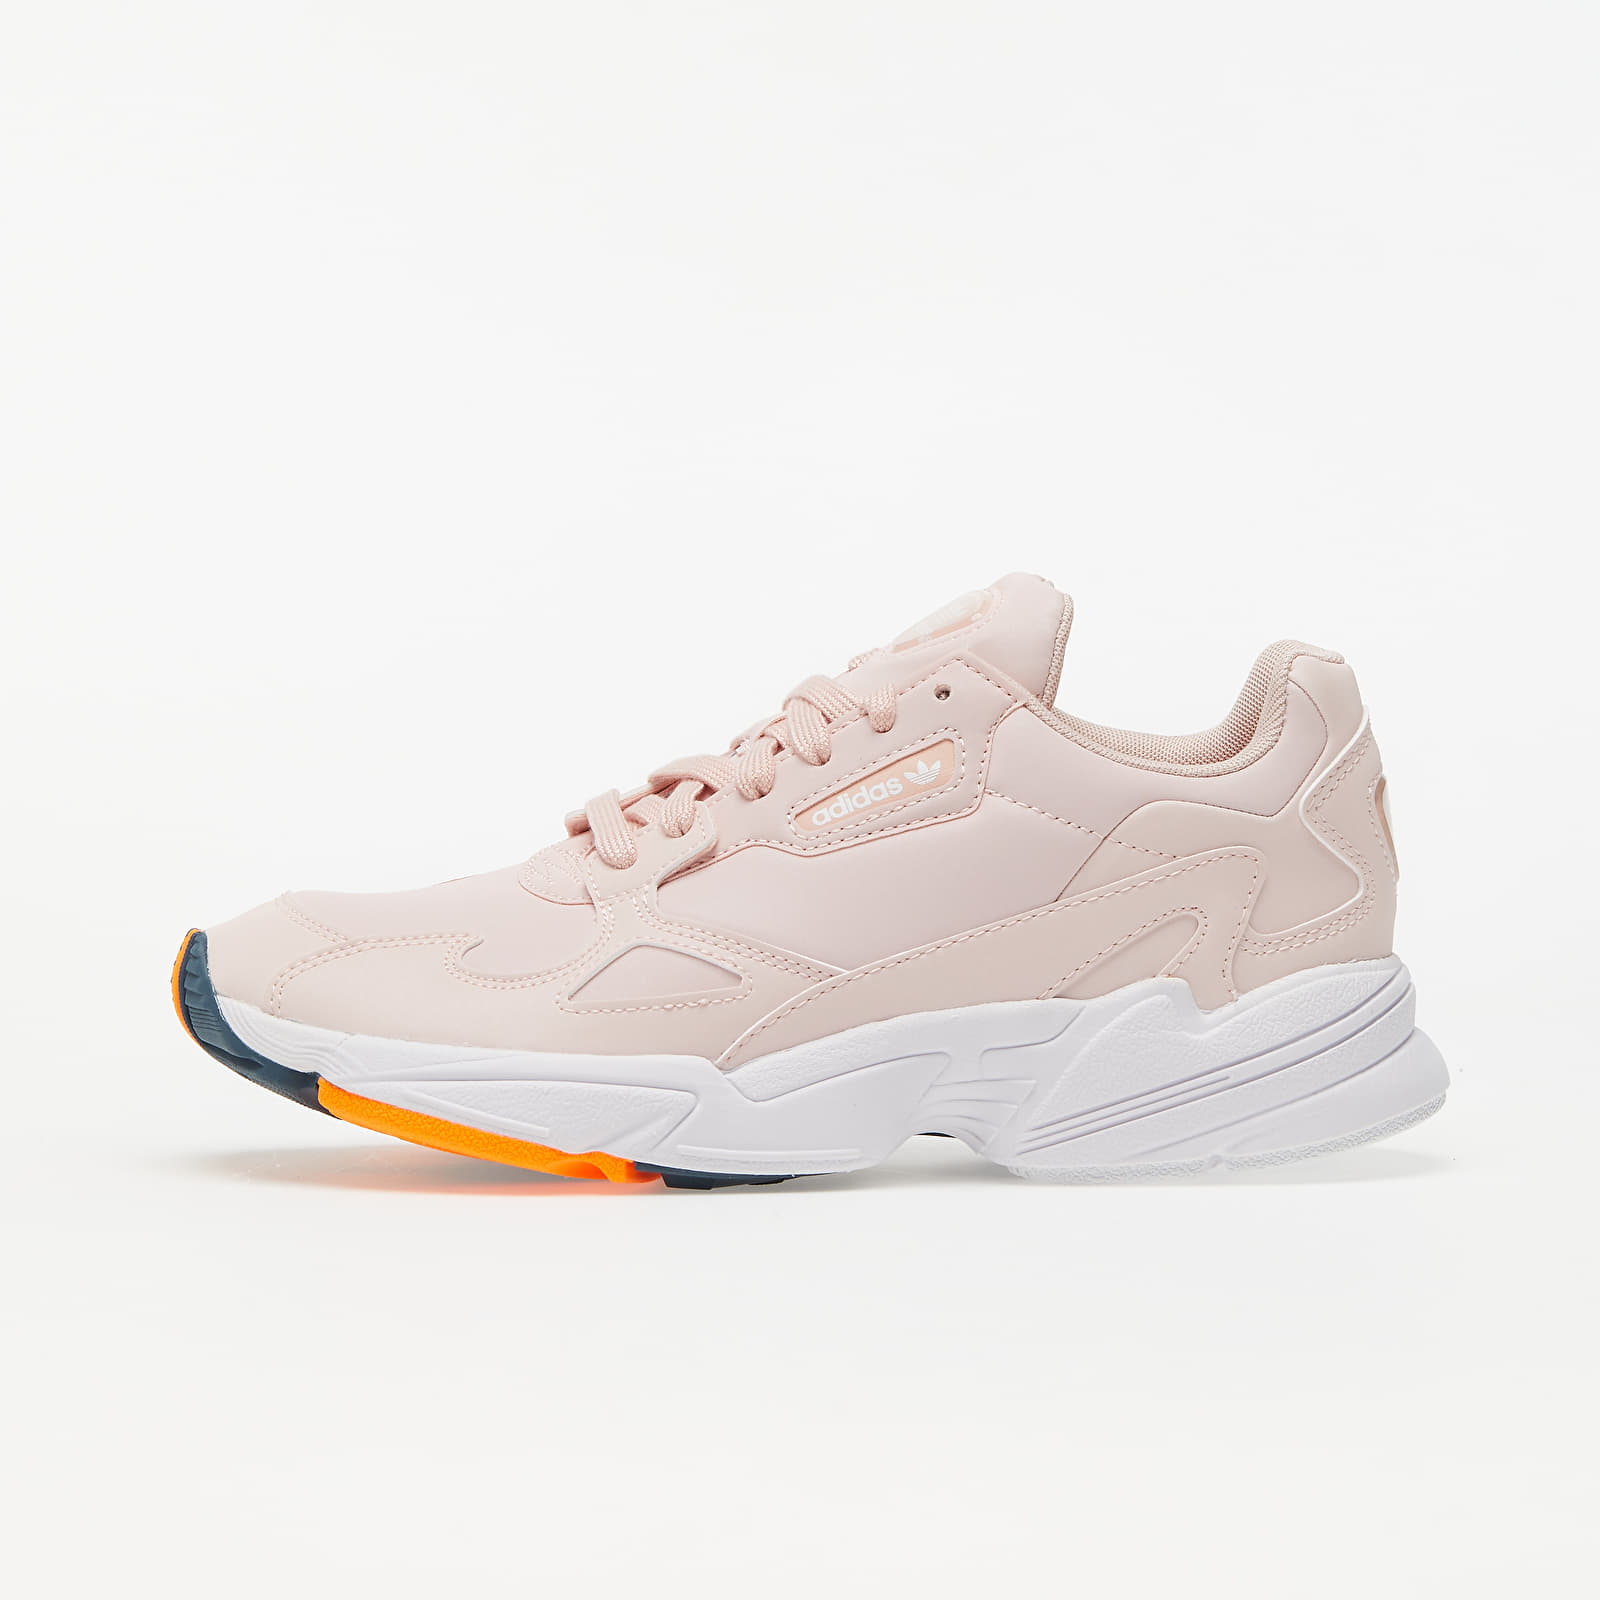 adidas Falcon W Vapour Pink/ Signature Orange/ Legend Blue FV1107